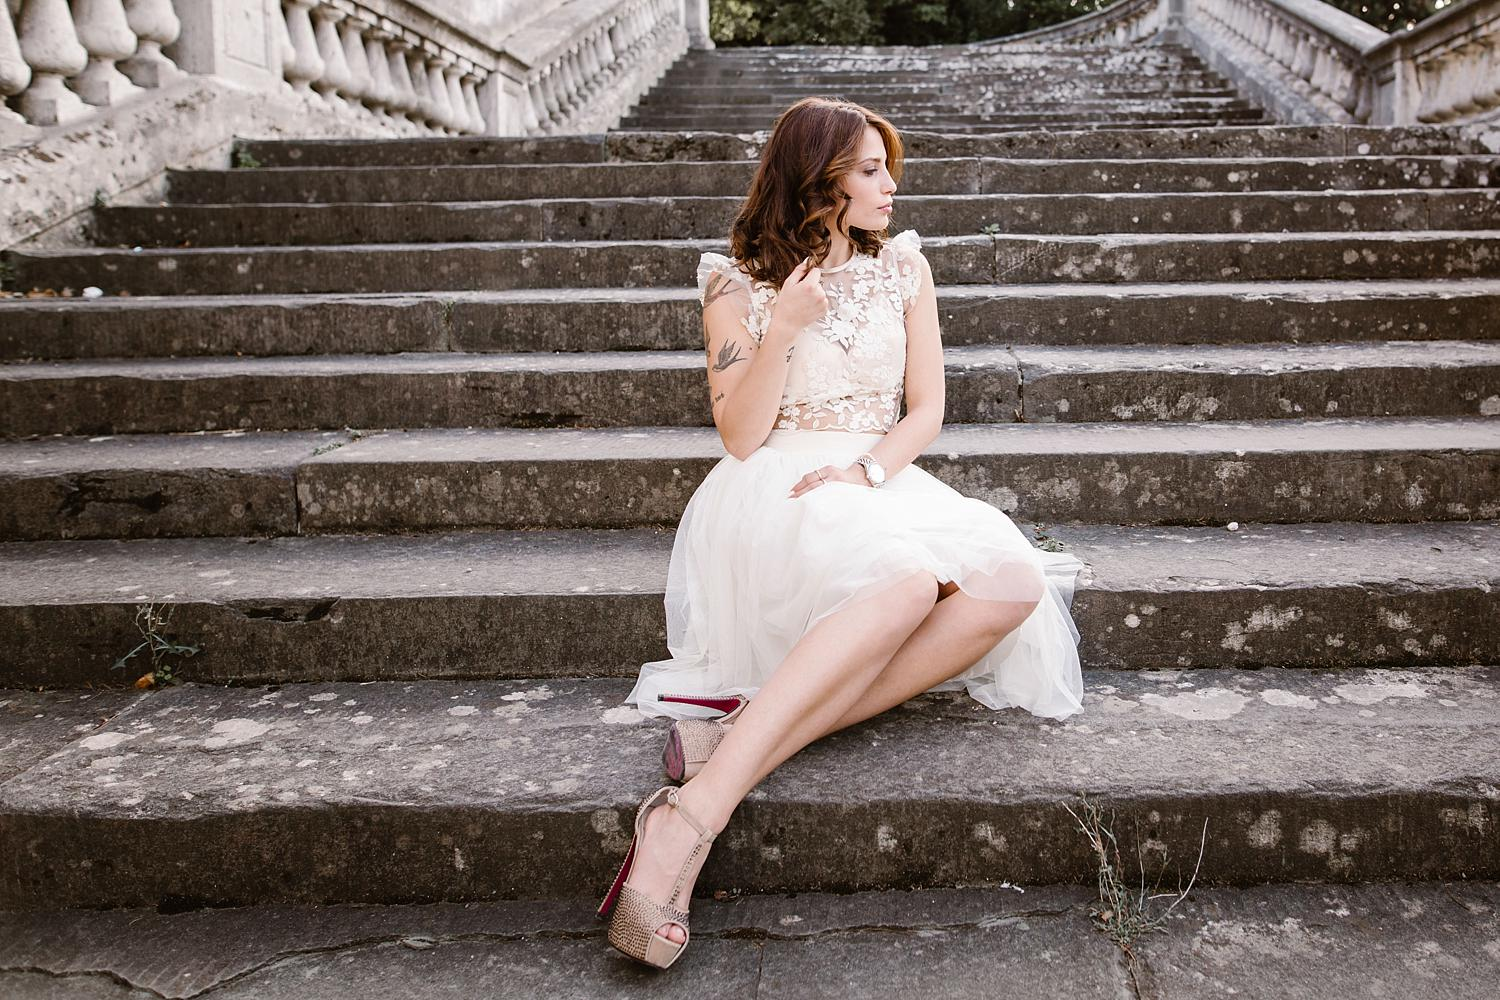 weddingphotographer florence 46 - Maddalena & Arturo - A Chic Anniversary Session in Florence